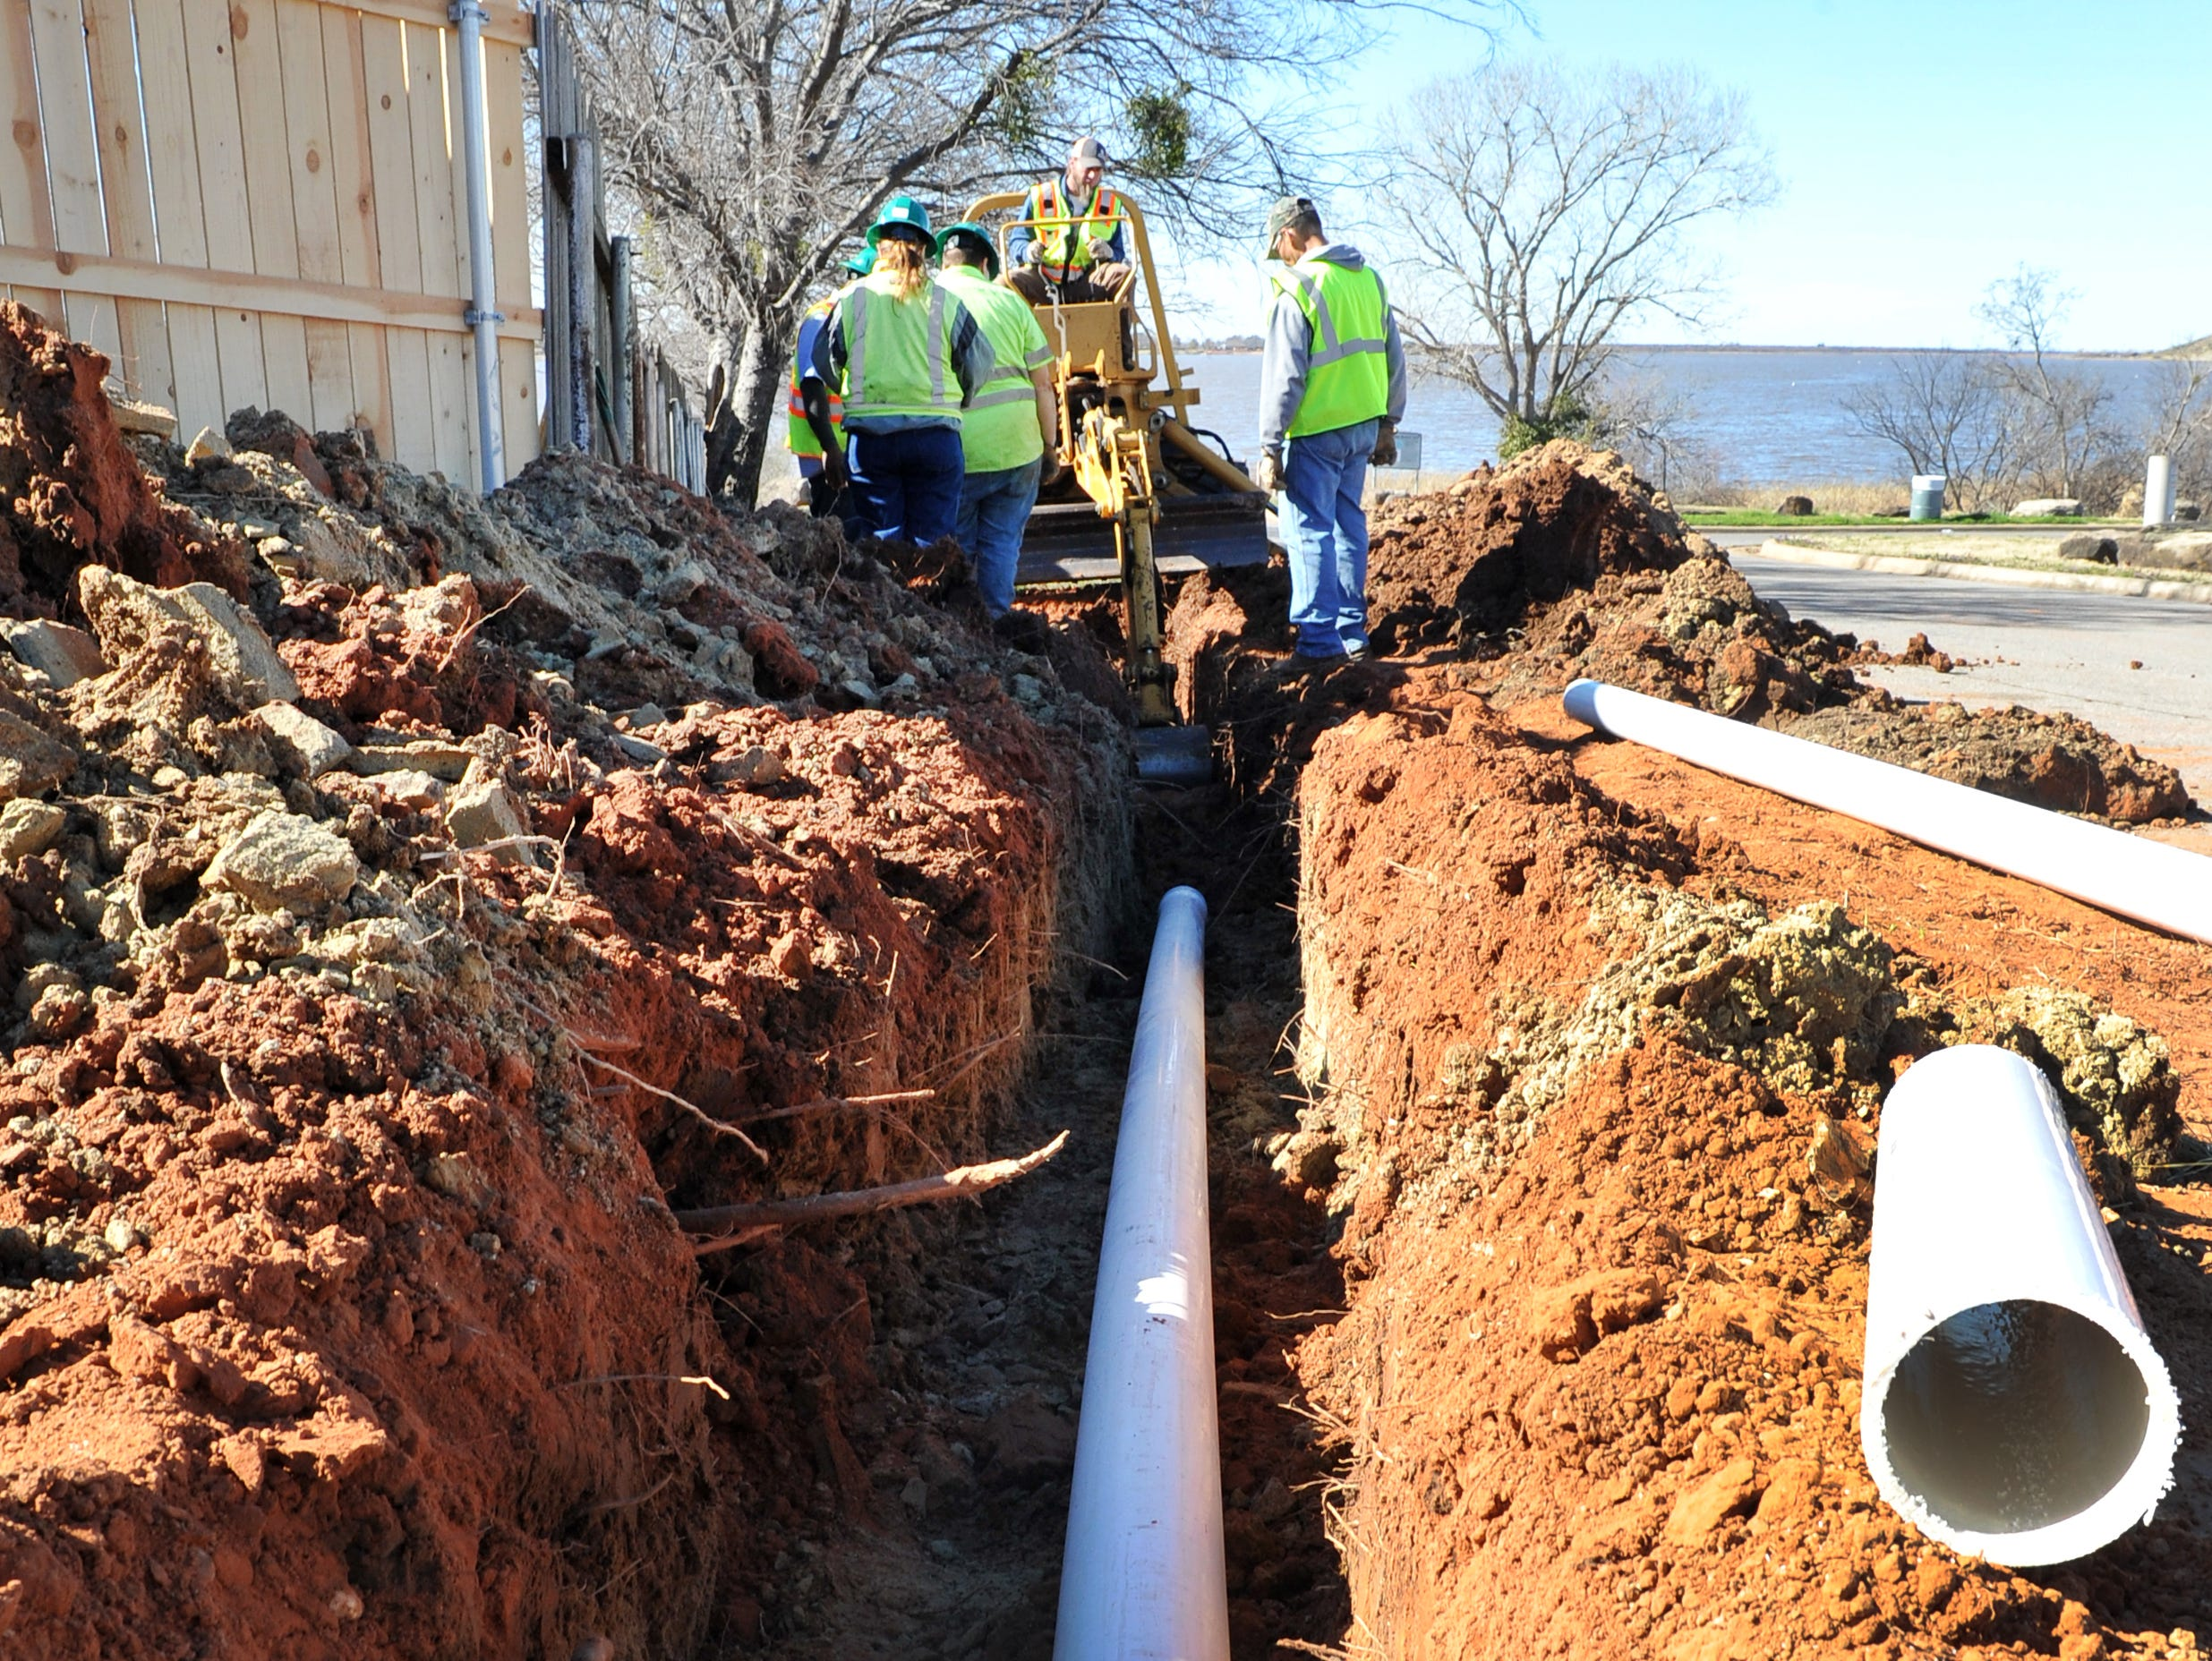 City of Wichita Falls park maintenance employees work dig a trench to run plumbing to a fish cleaning station at the Lake Wichita boat ramp located on Kemp Blvd. Monday morning.